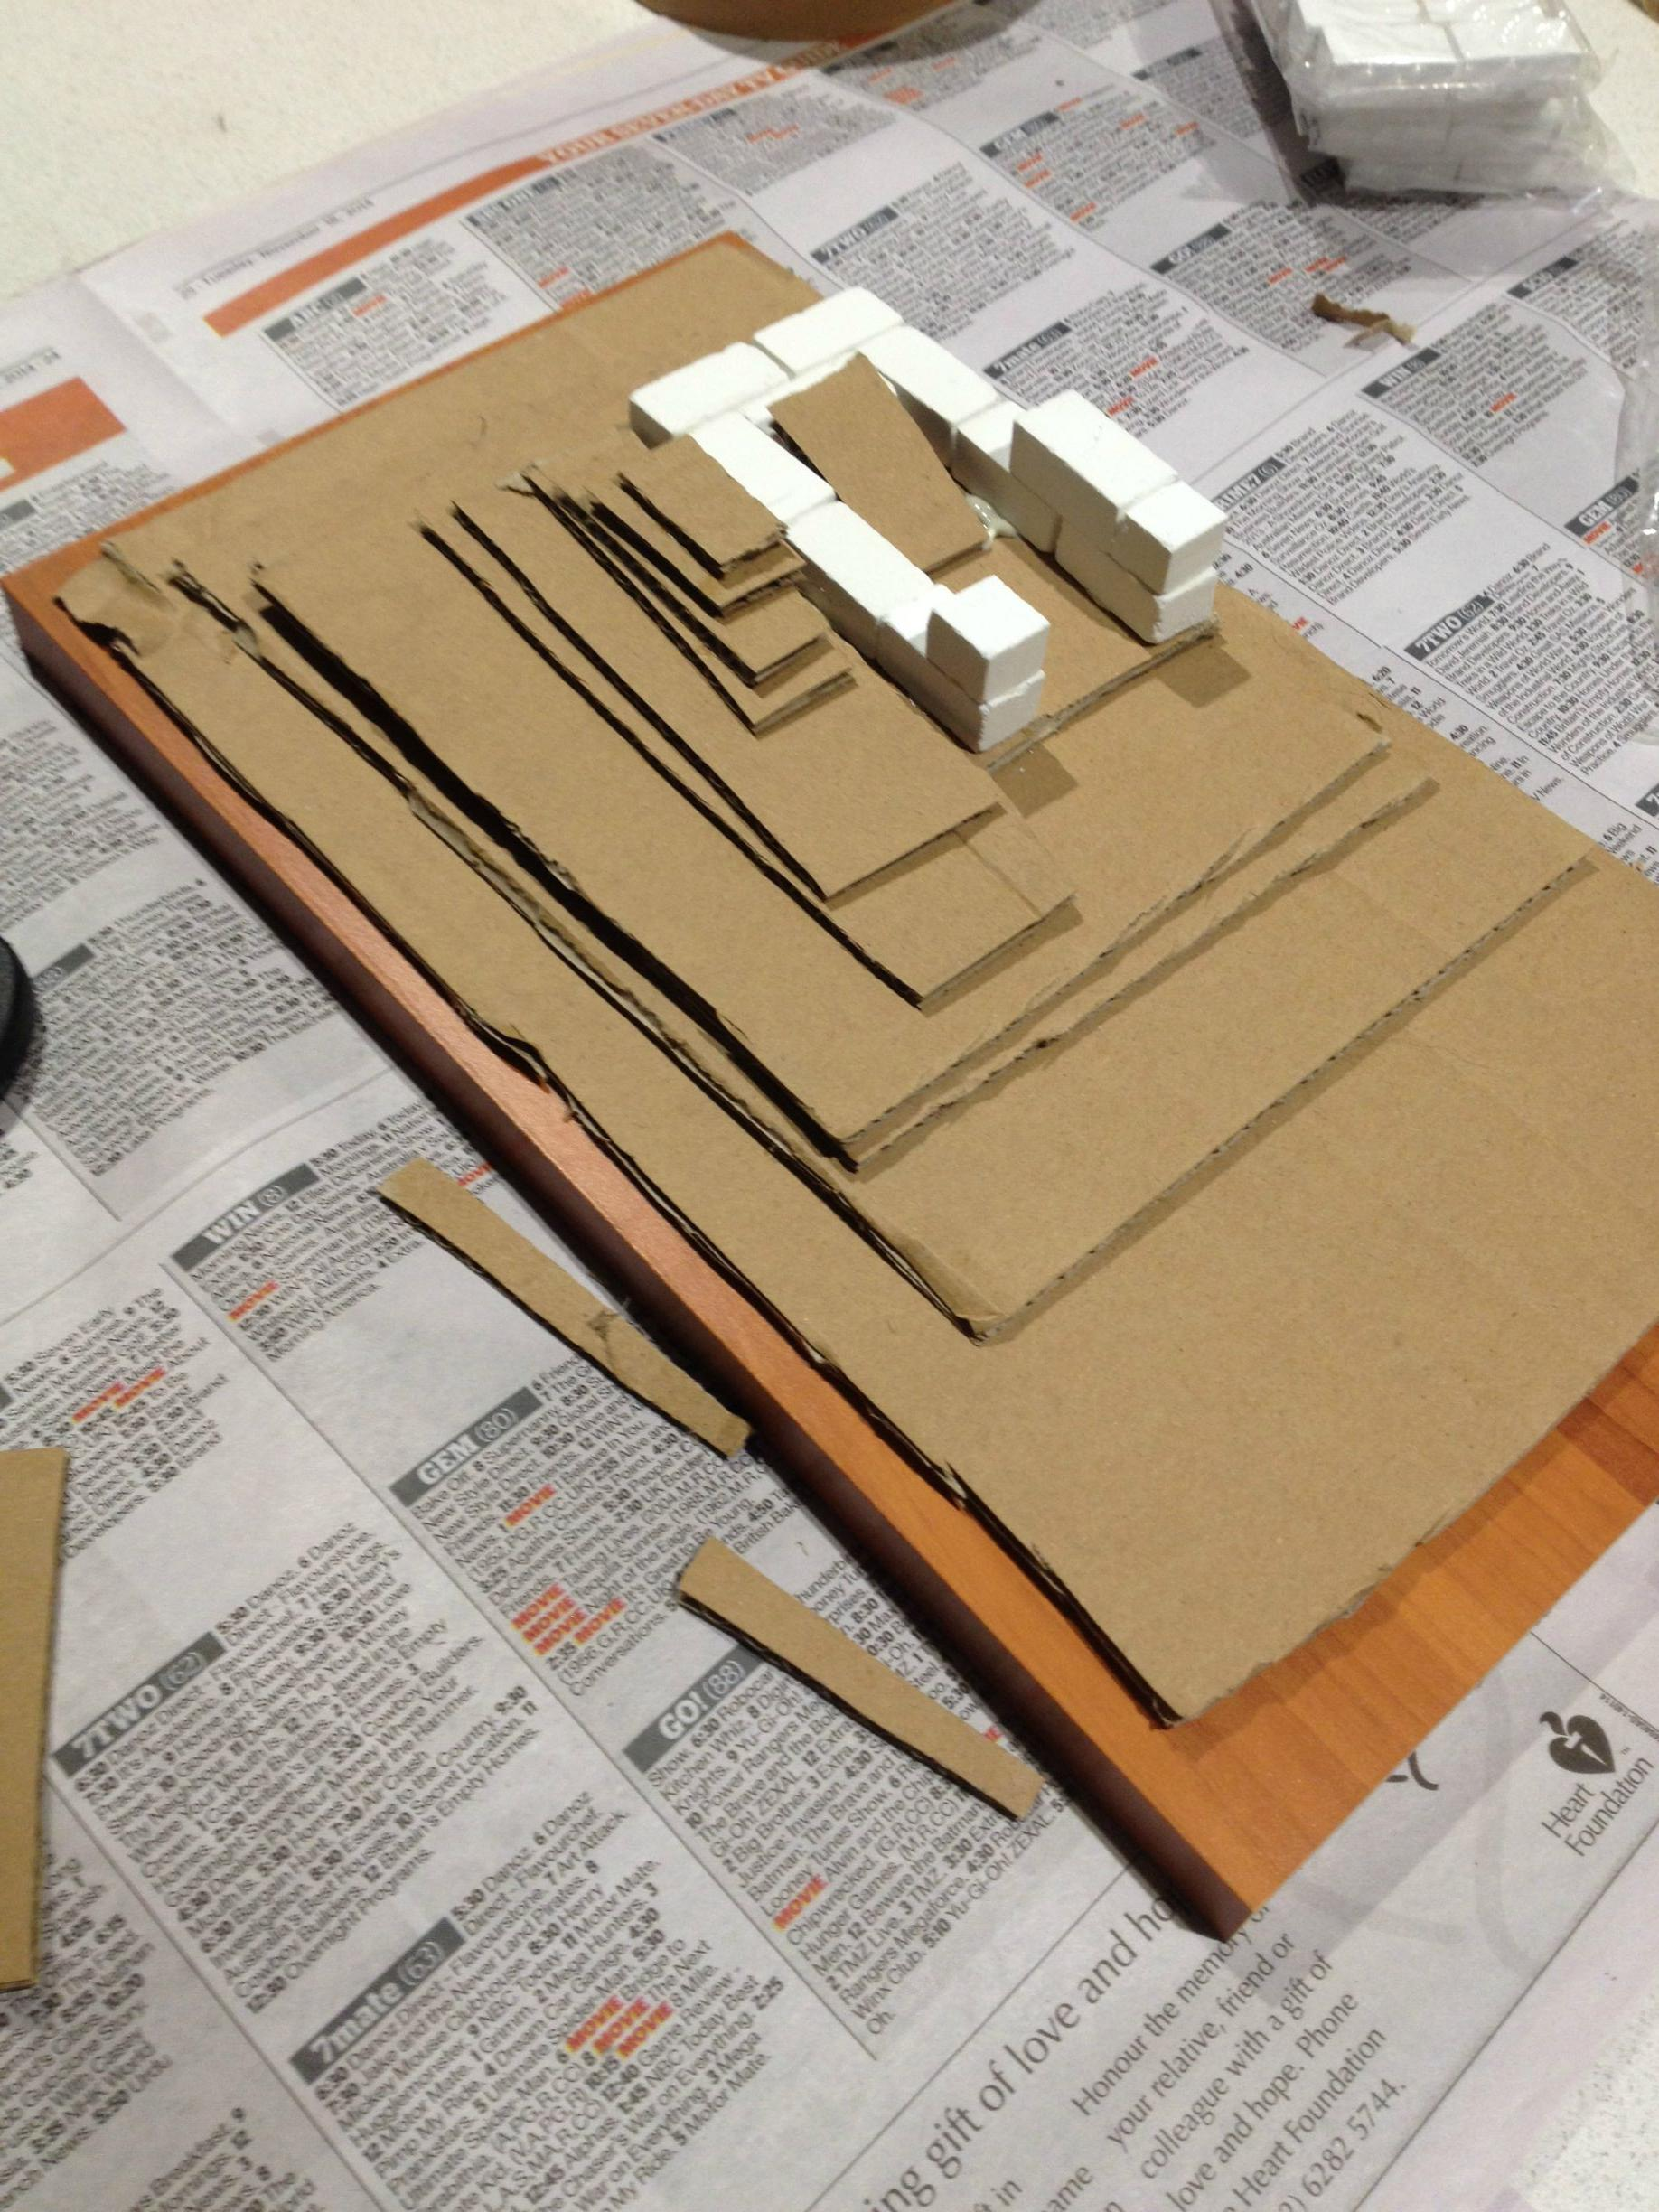 03 - The base of the Dice tower - with improvised ramp